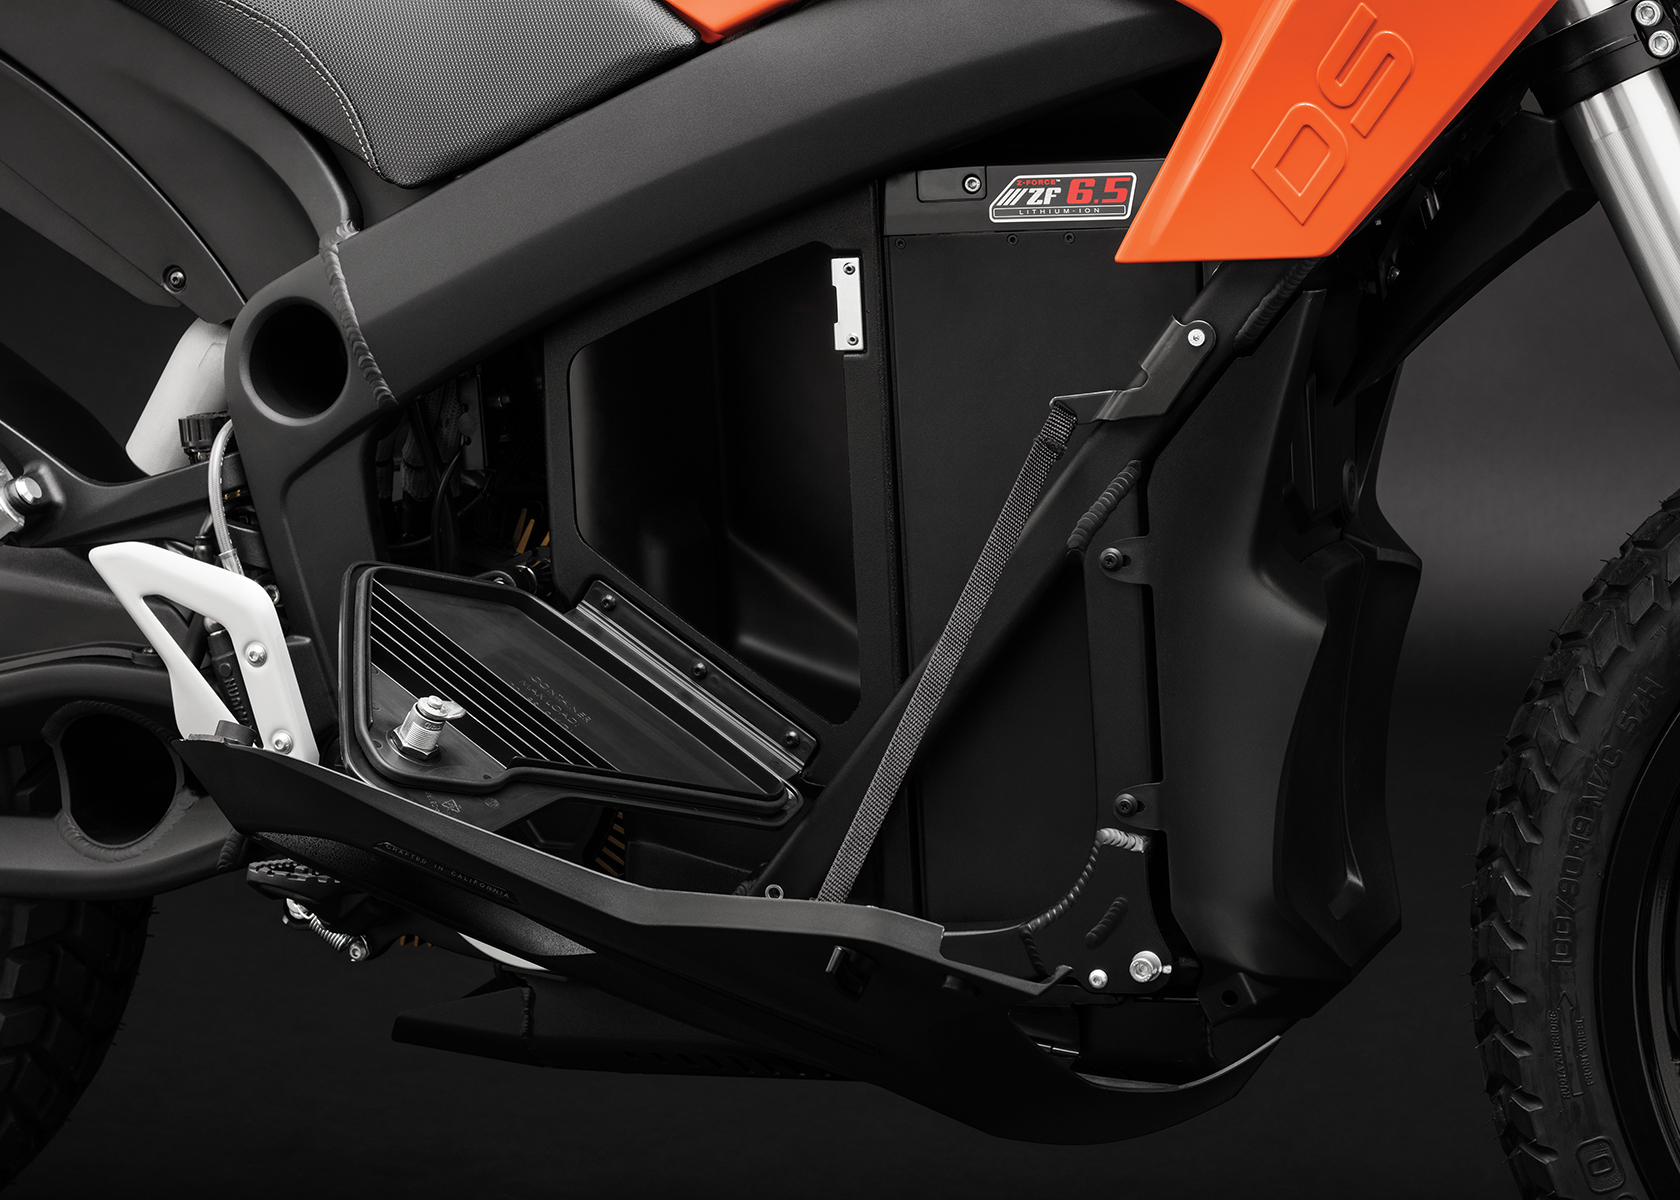 2017 Zero DS Electric Motorcycle: Storage Open